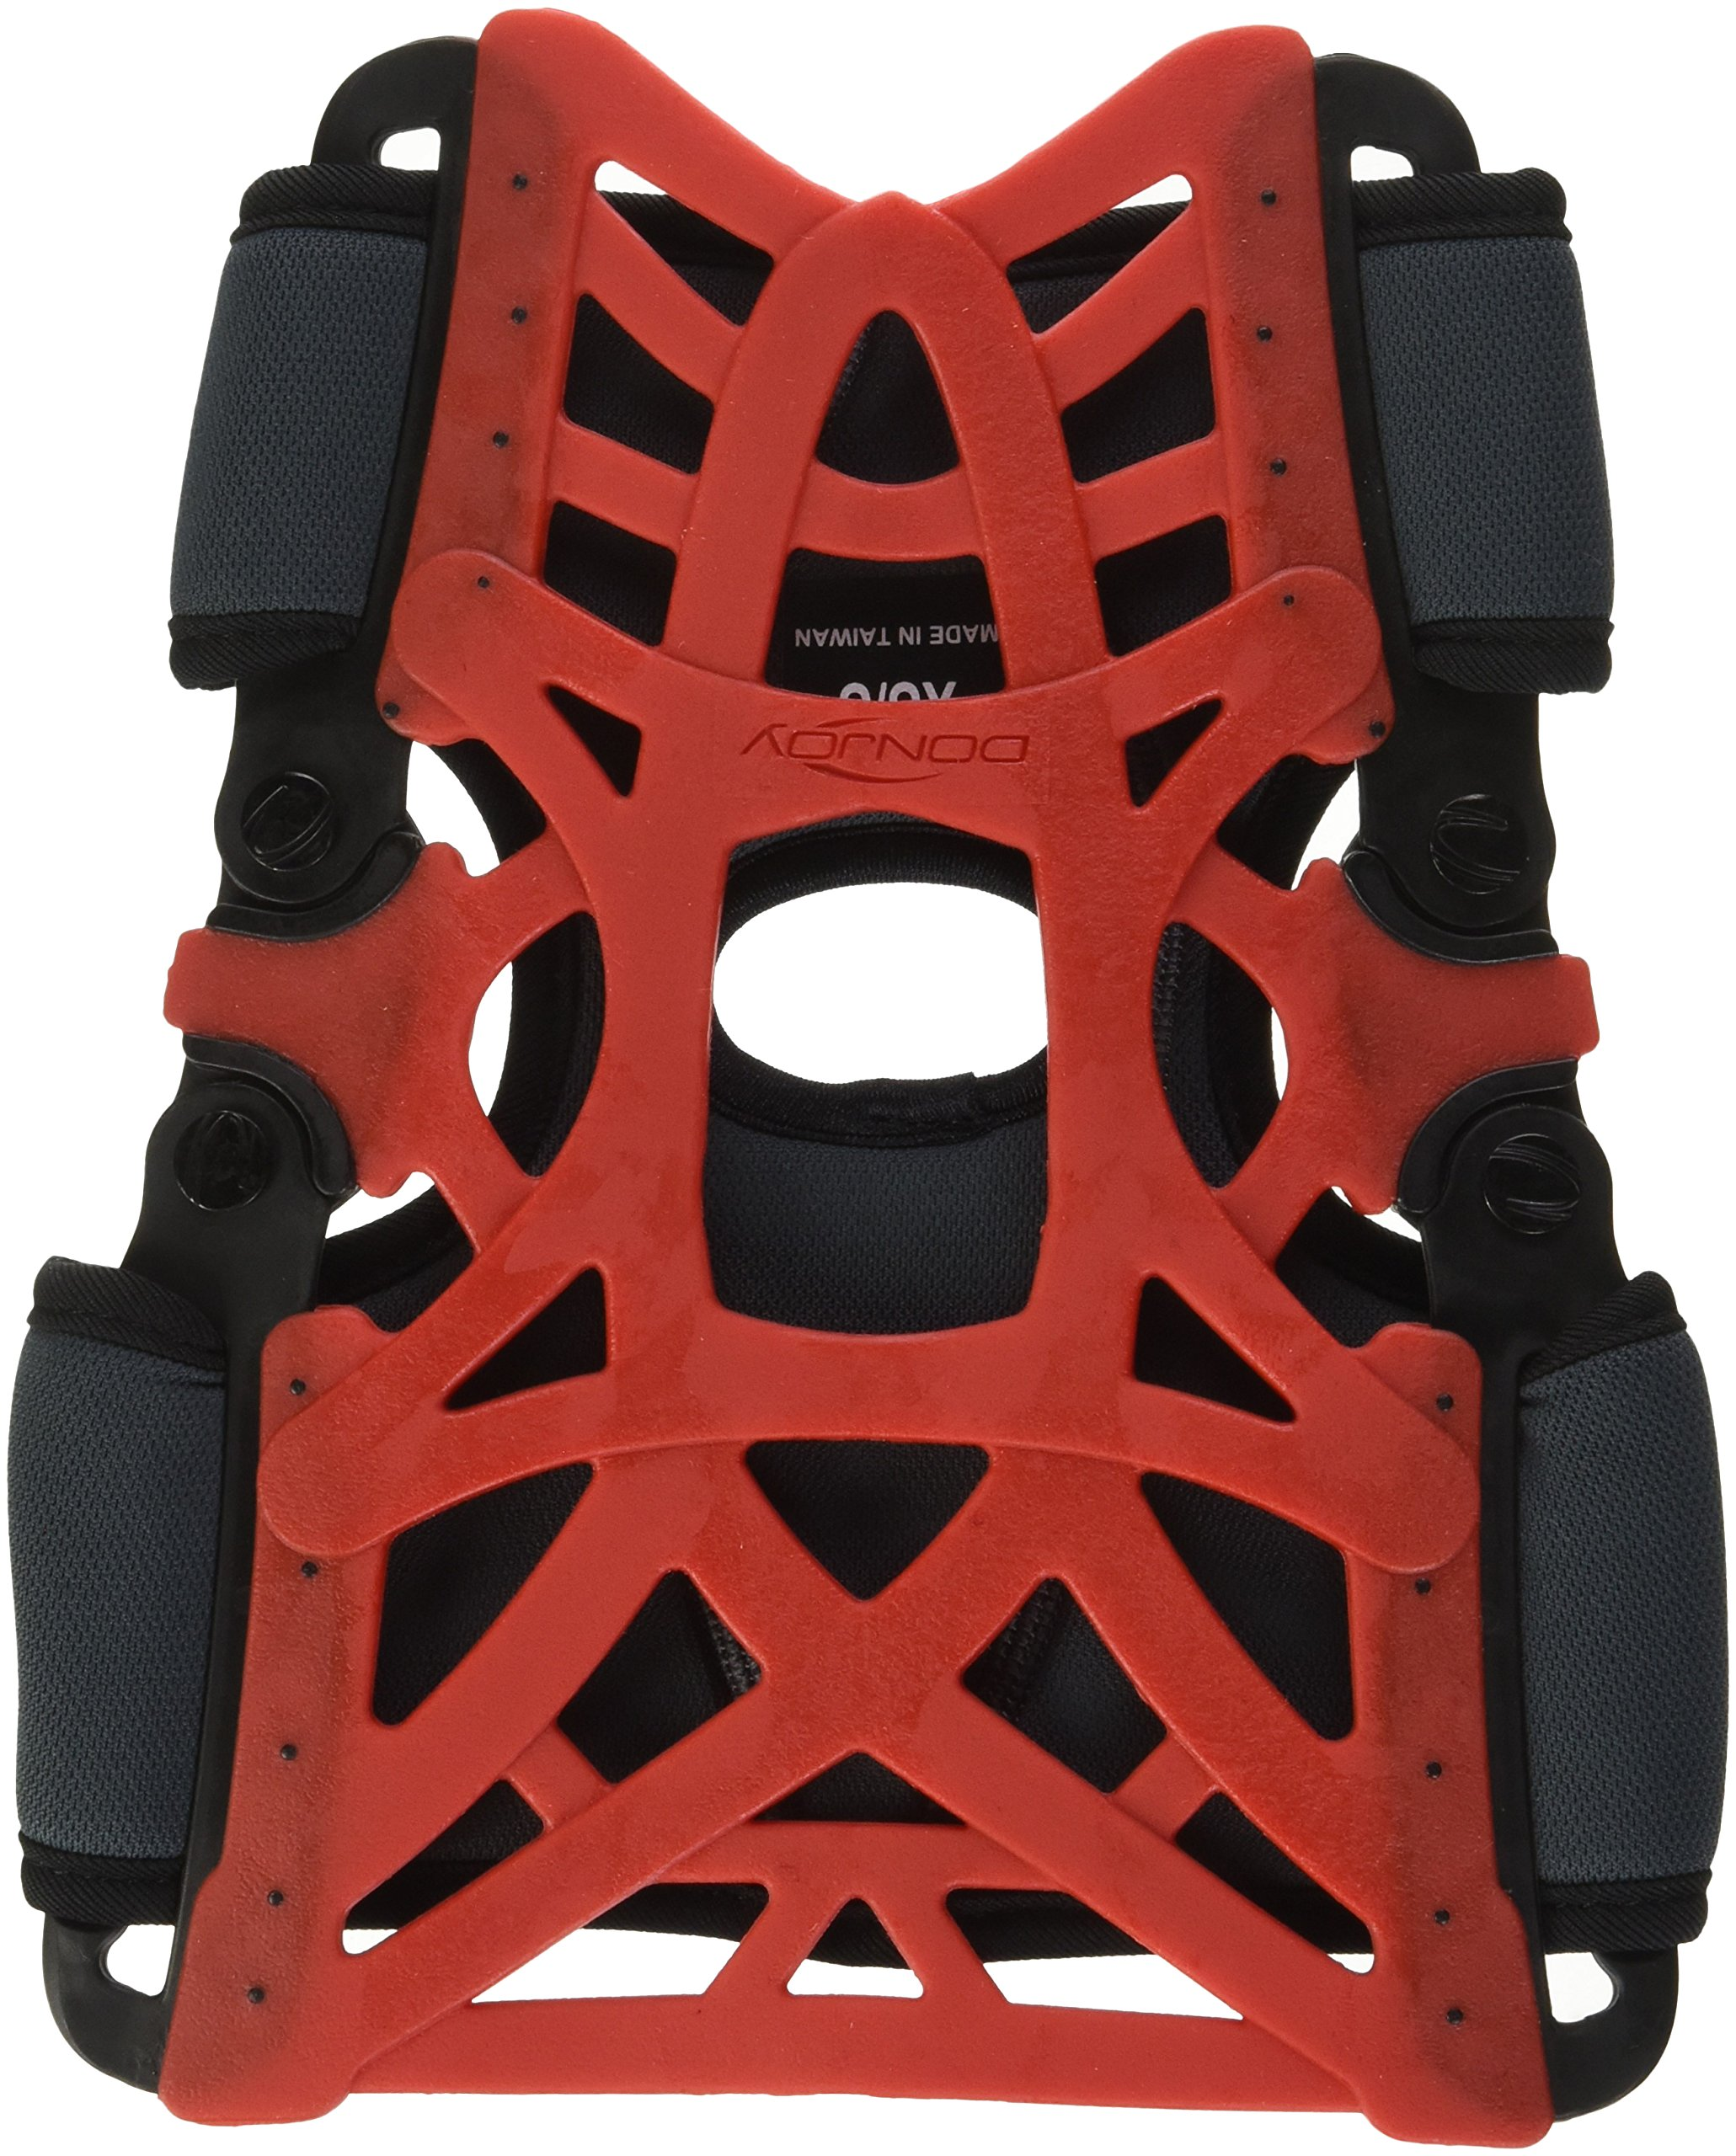 DonJoy Reaction Web Knee Support Brace with Compression Undersleeve: Red, X-Small/Small by DonJoy